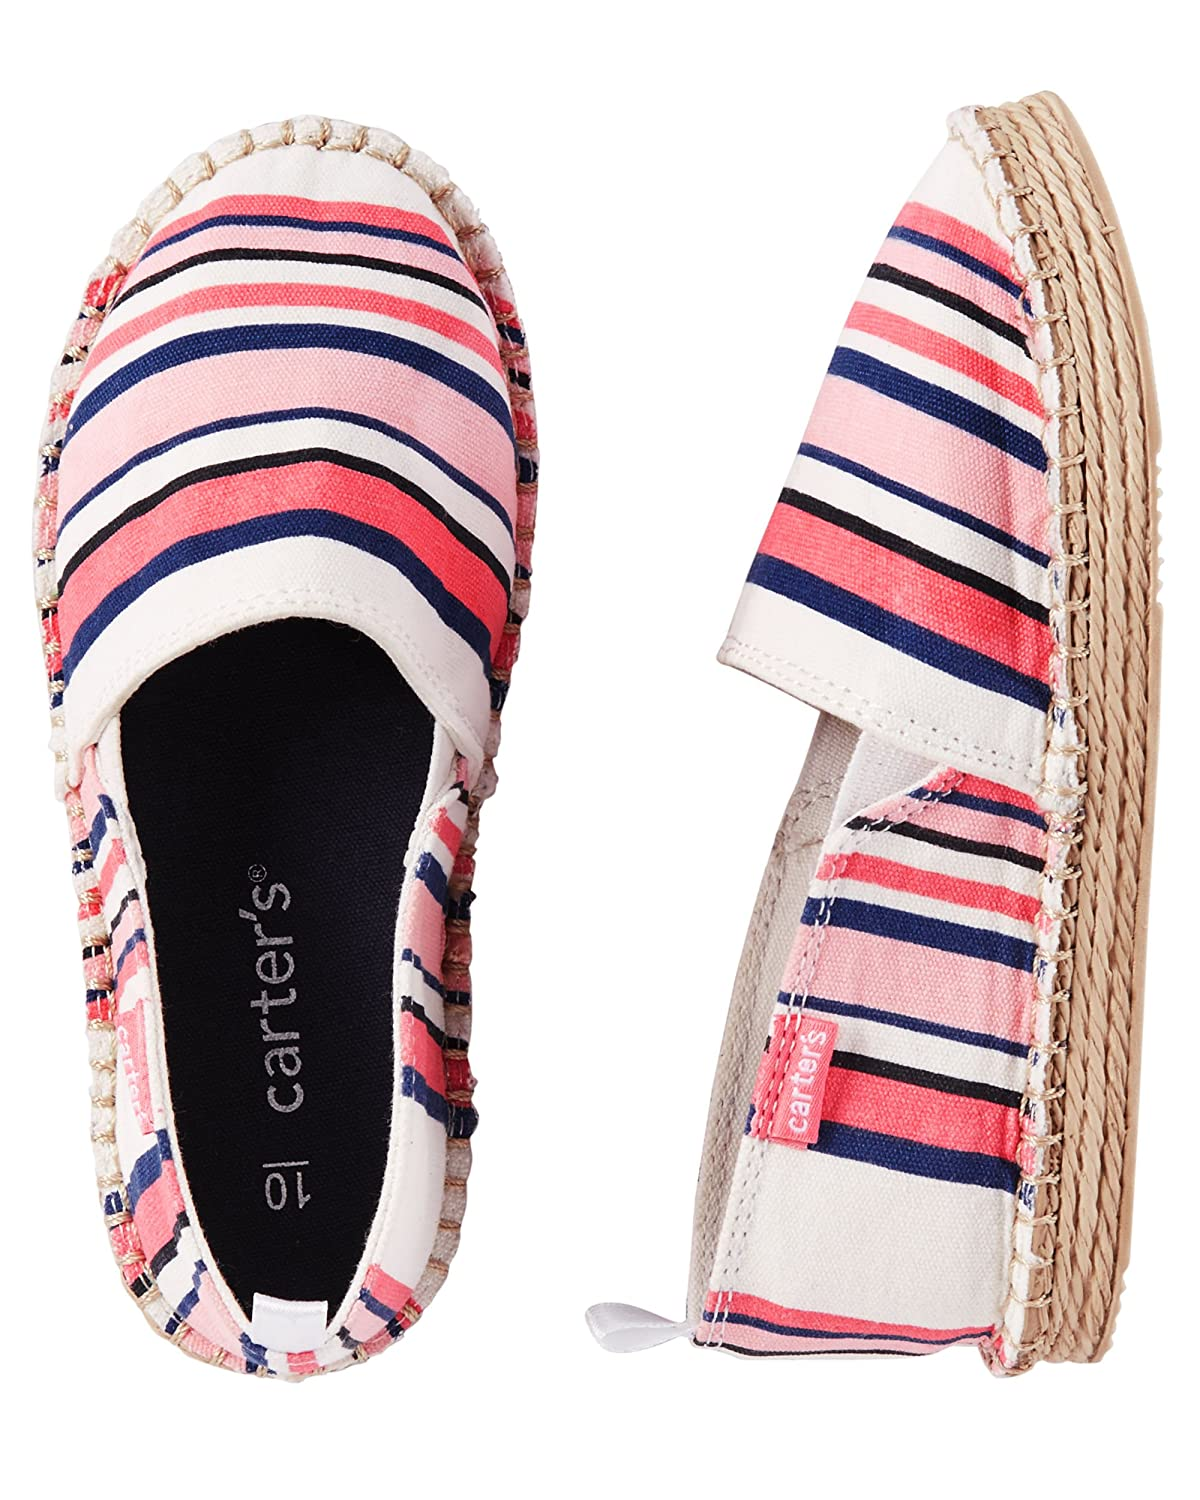 Multi Stripe OshKosh BGosh Baby Girls Slip-On Espadrilles Size 5